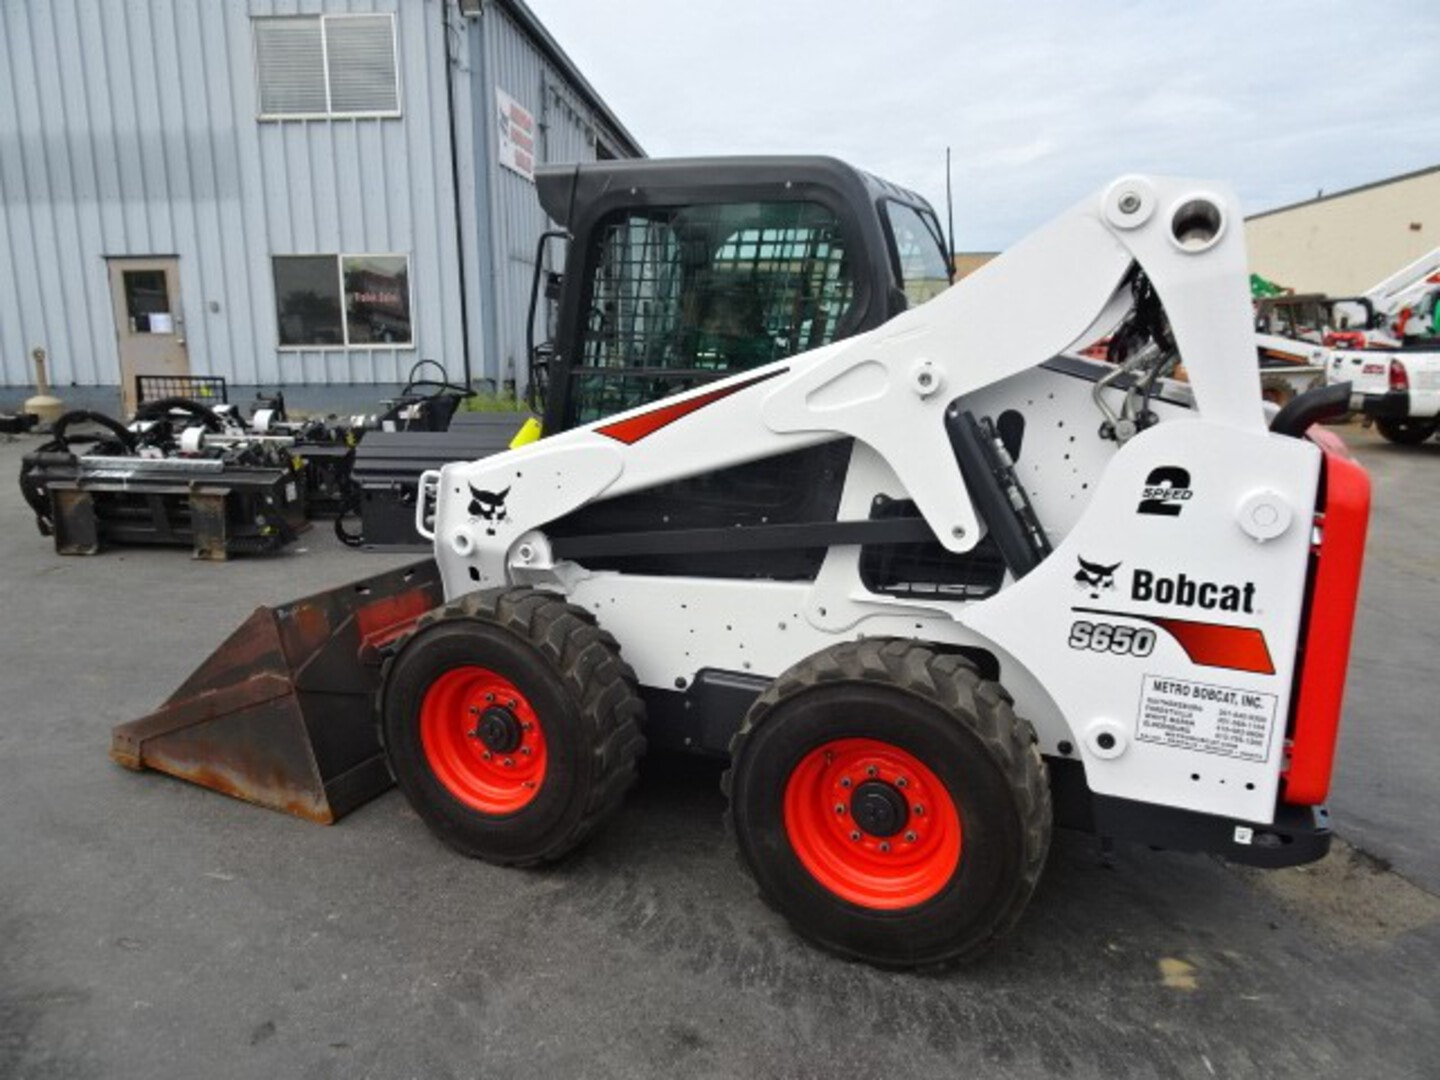 Used, 2020, Bobcat, S650 Skid-Steer Loader - $2300 CASH REBATE OR SPECIAL FINANCING AVAILABLE - C37, P29 PACKAGES - 74 HP Turbo Charged Bobcat Diesel Engine (Tier 4) - 167 HOURS - 2 SPEED WITH KEYLESS START PANEL , Skid Steers